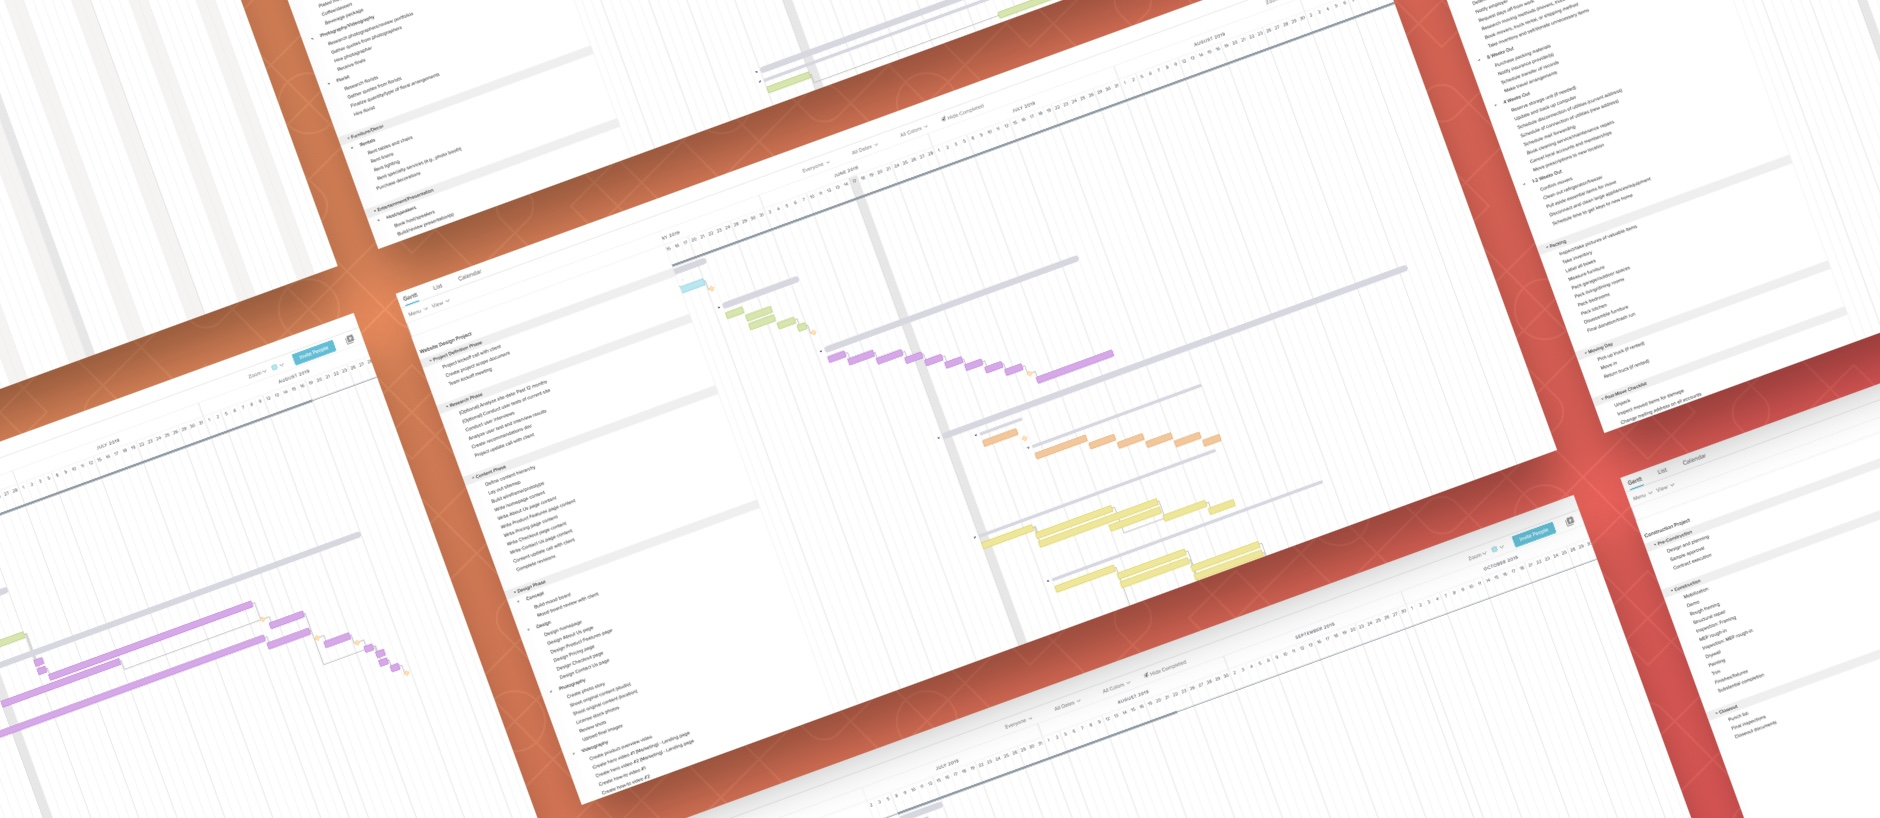 gantt chart examples for project management